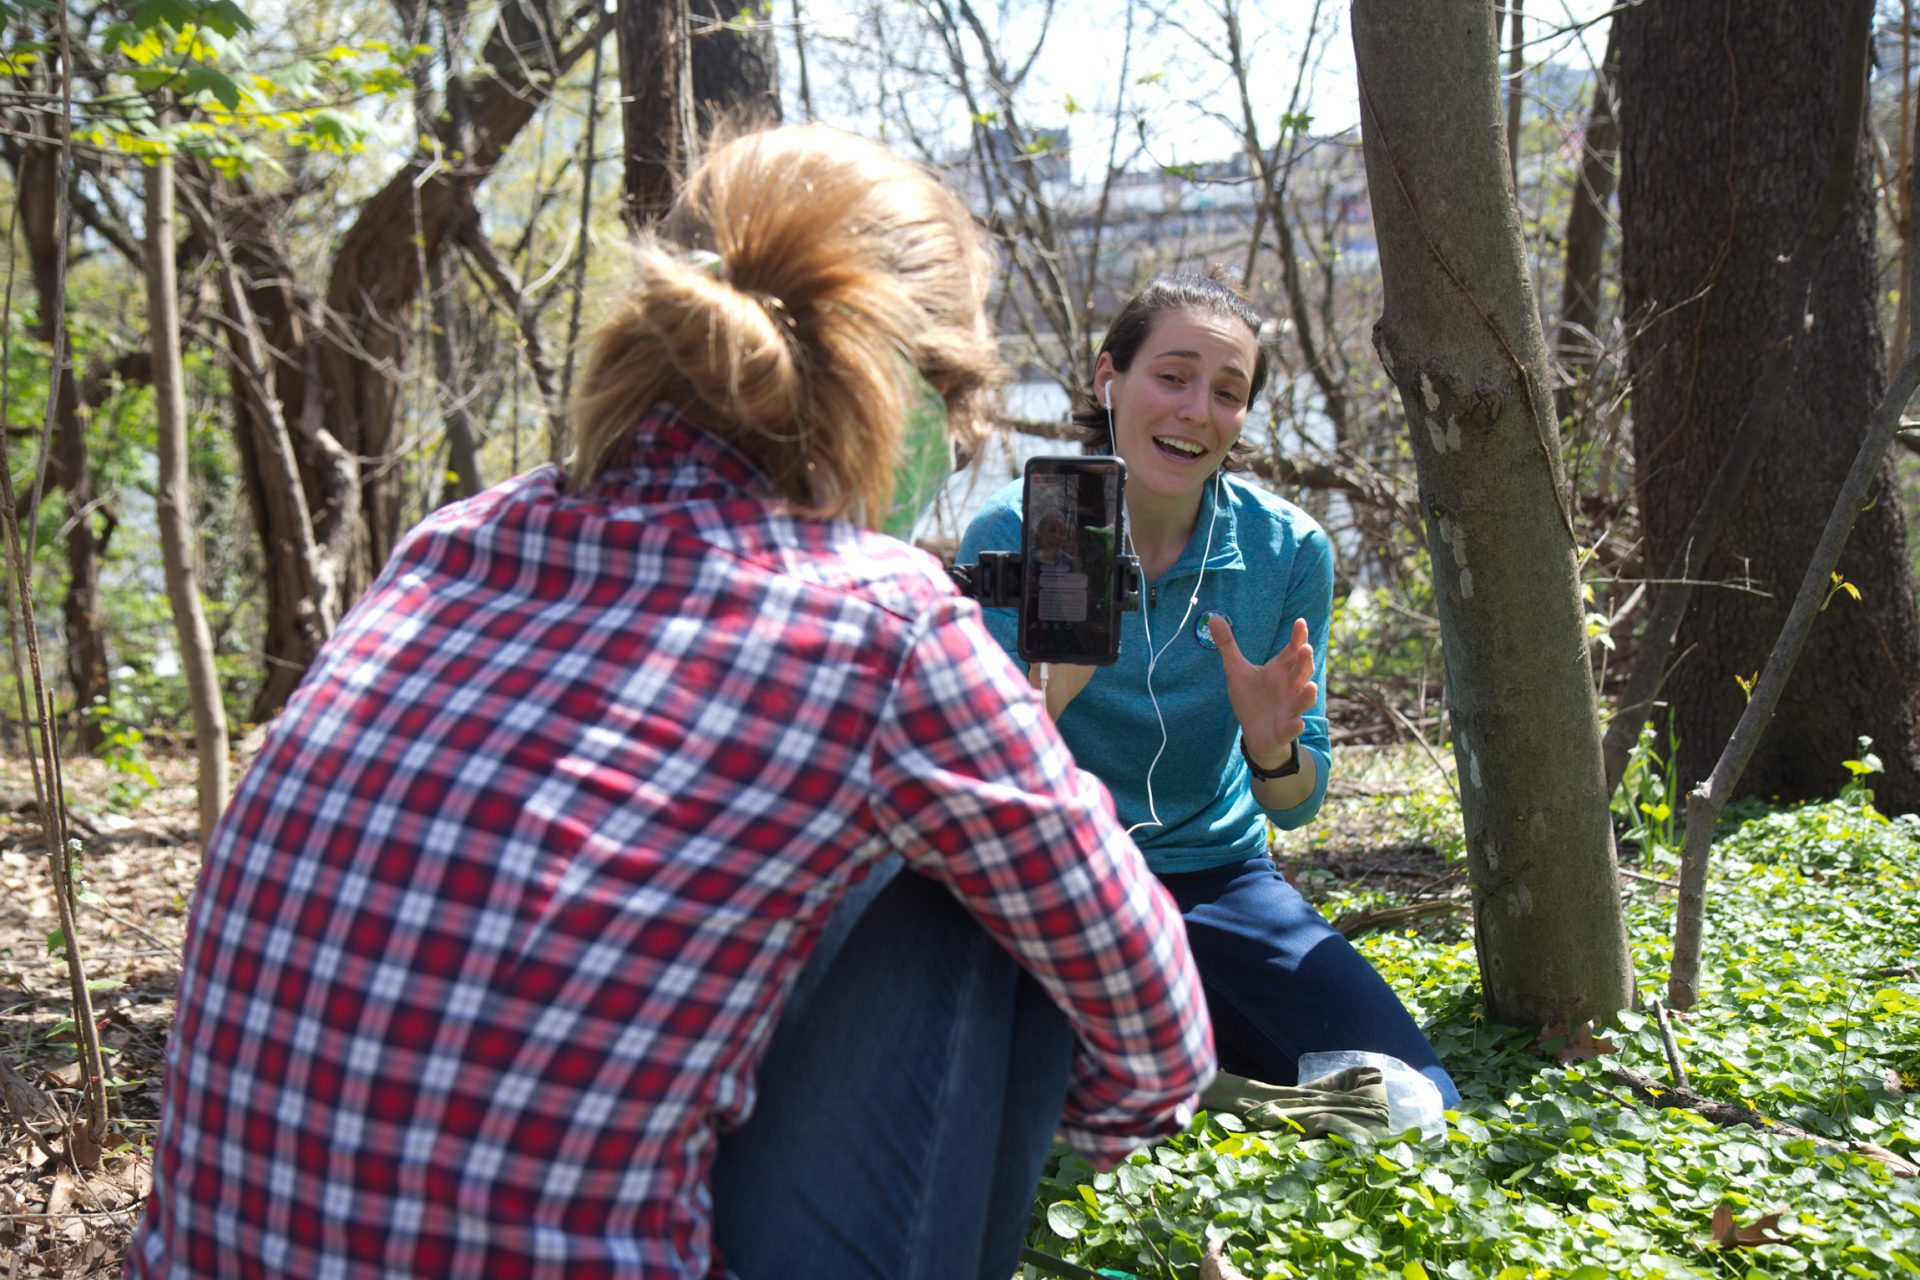 Rachel Valletta, Director of the Climate and Urban Systems Partnership at the Franklin Institute and her partner Amy Bond, live streamed an instructional video to show people how to remove the eggs of the spotted lantern fly from vulnerable trees.